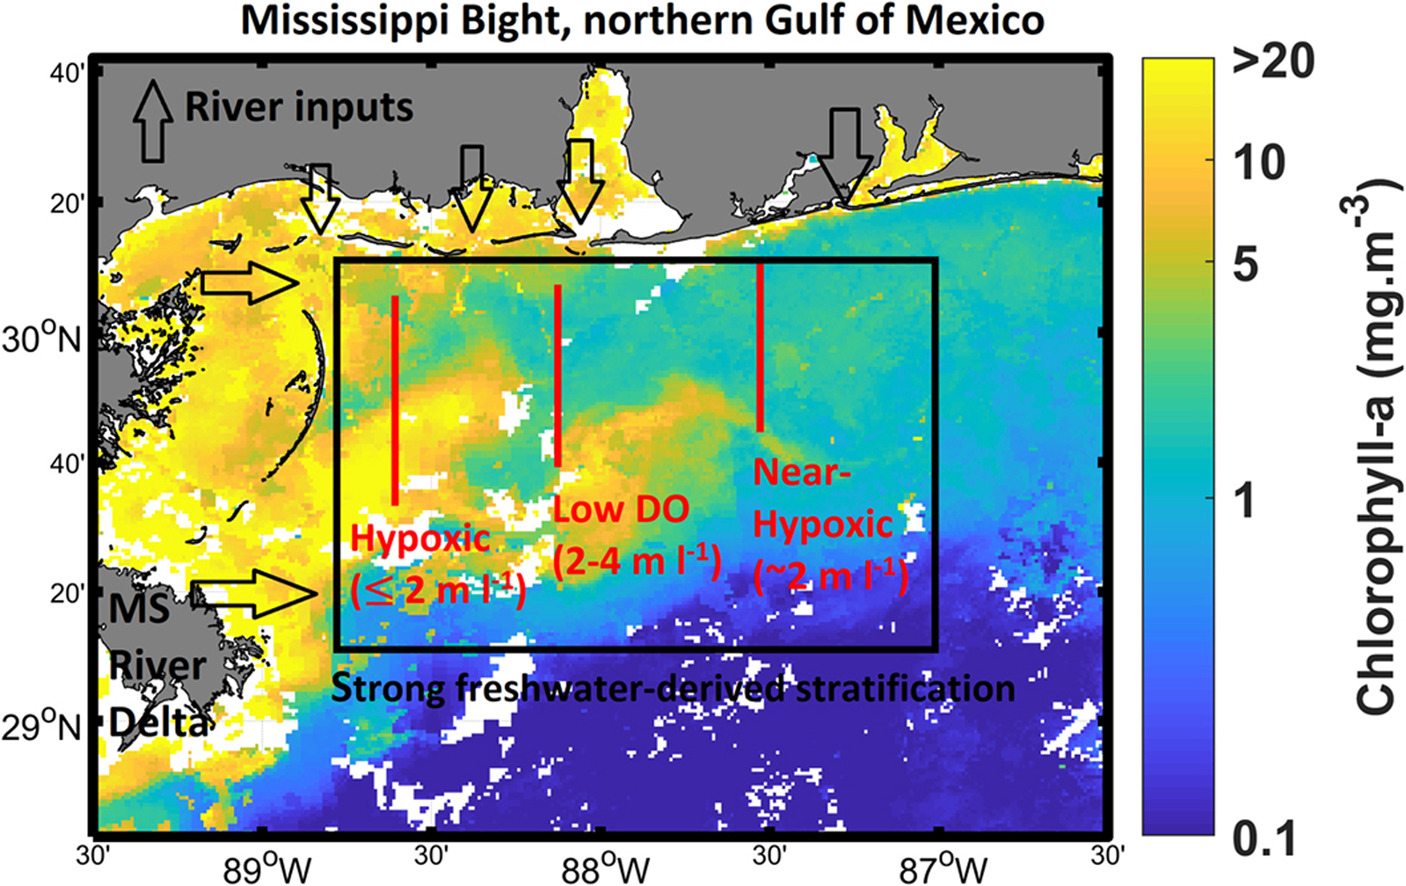 Hypoxia in the Mississippi Bight